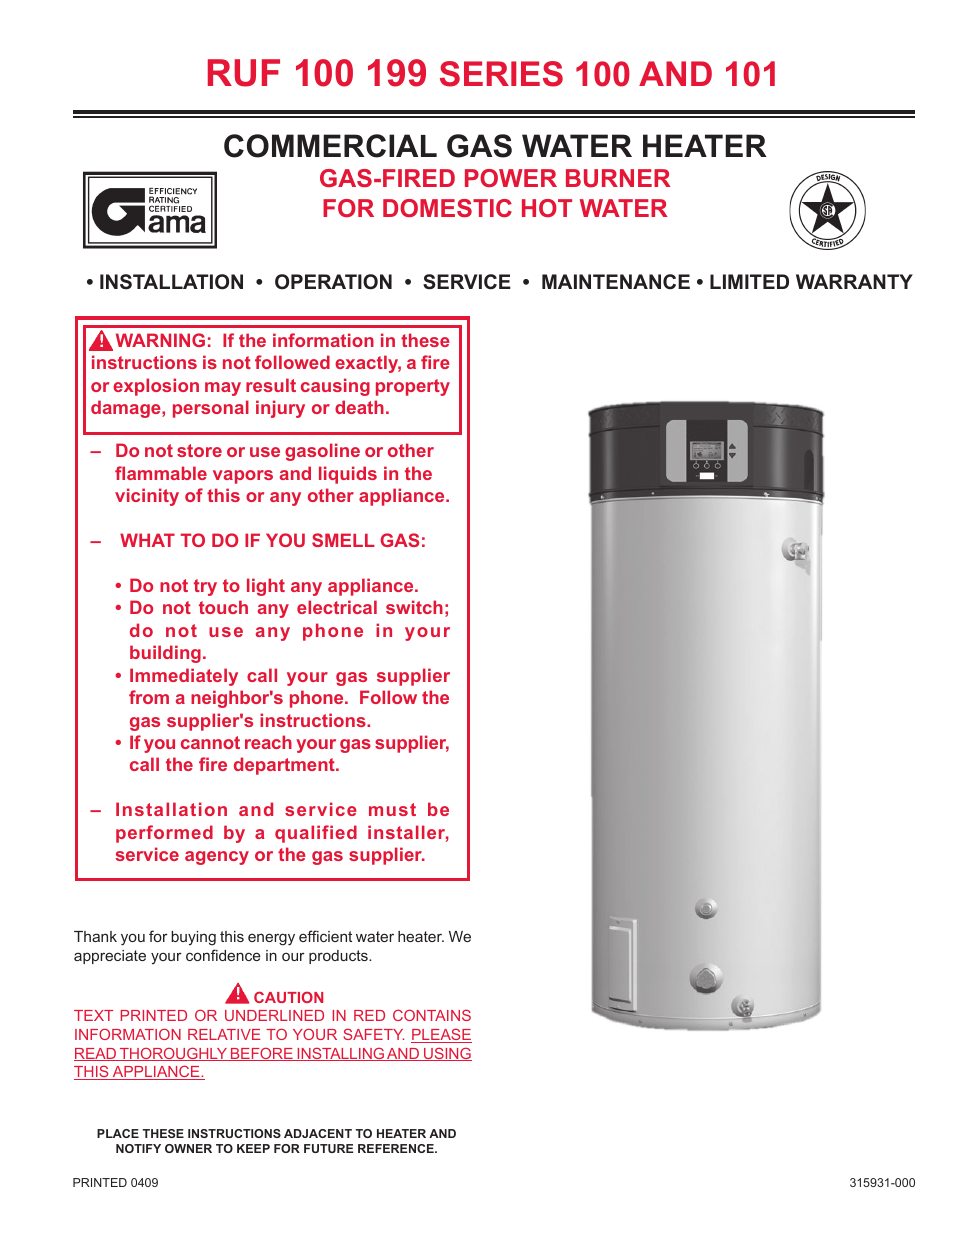 Reliance water heaters ruf 100 199 series 101 user manual for Hot water heater 101